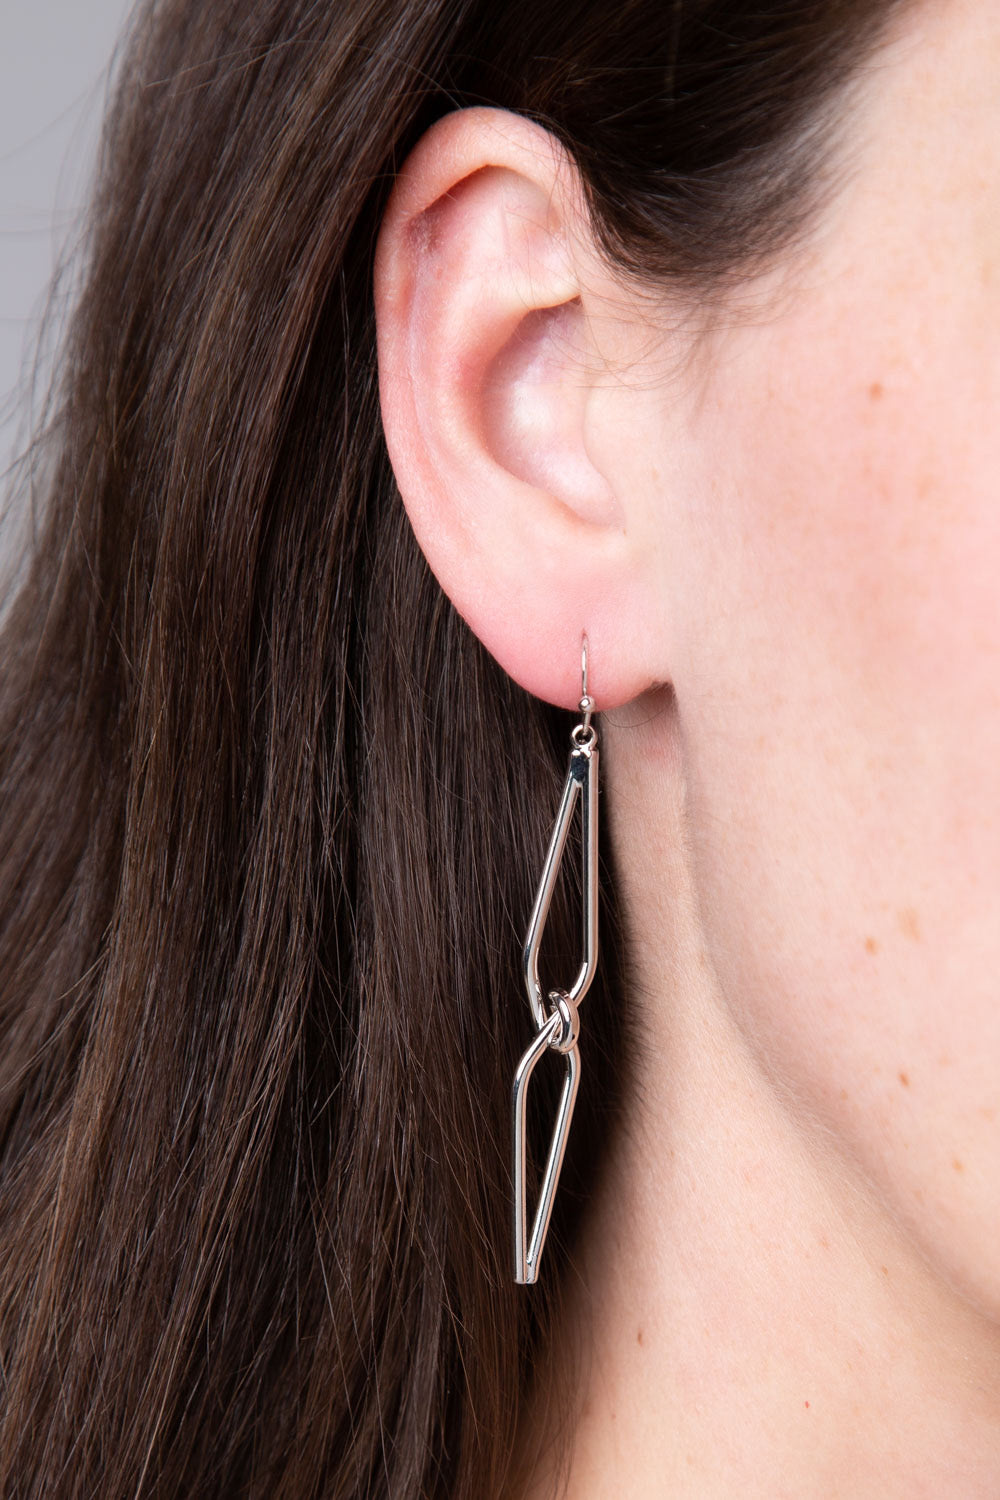 Type 4 Over the Fences Earrings